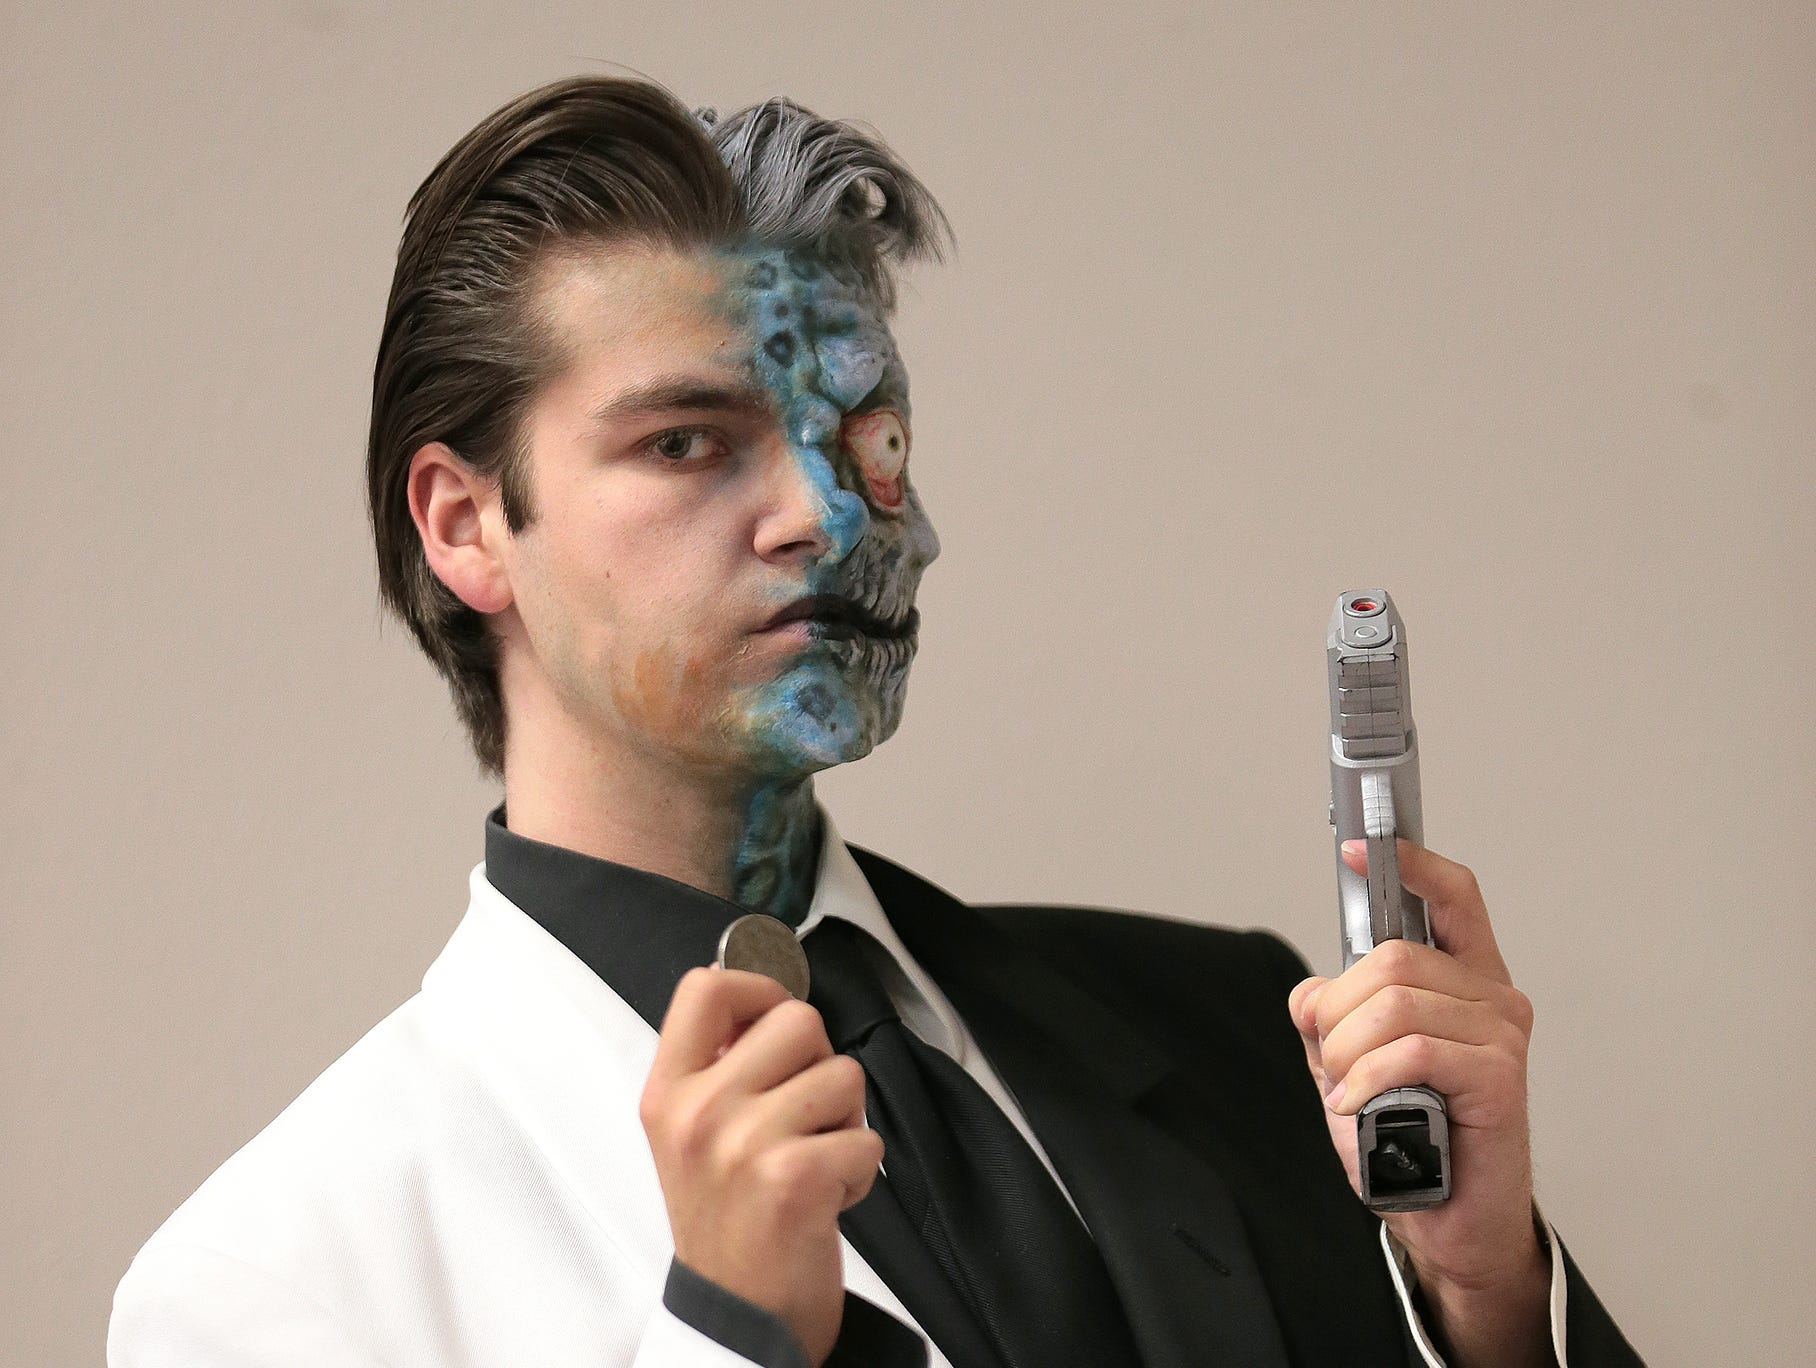 Nick Packard shows off his Two-Face costume complete with special effects makeup by Walter Welsh.